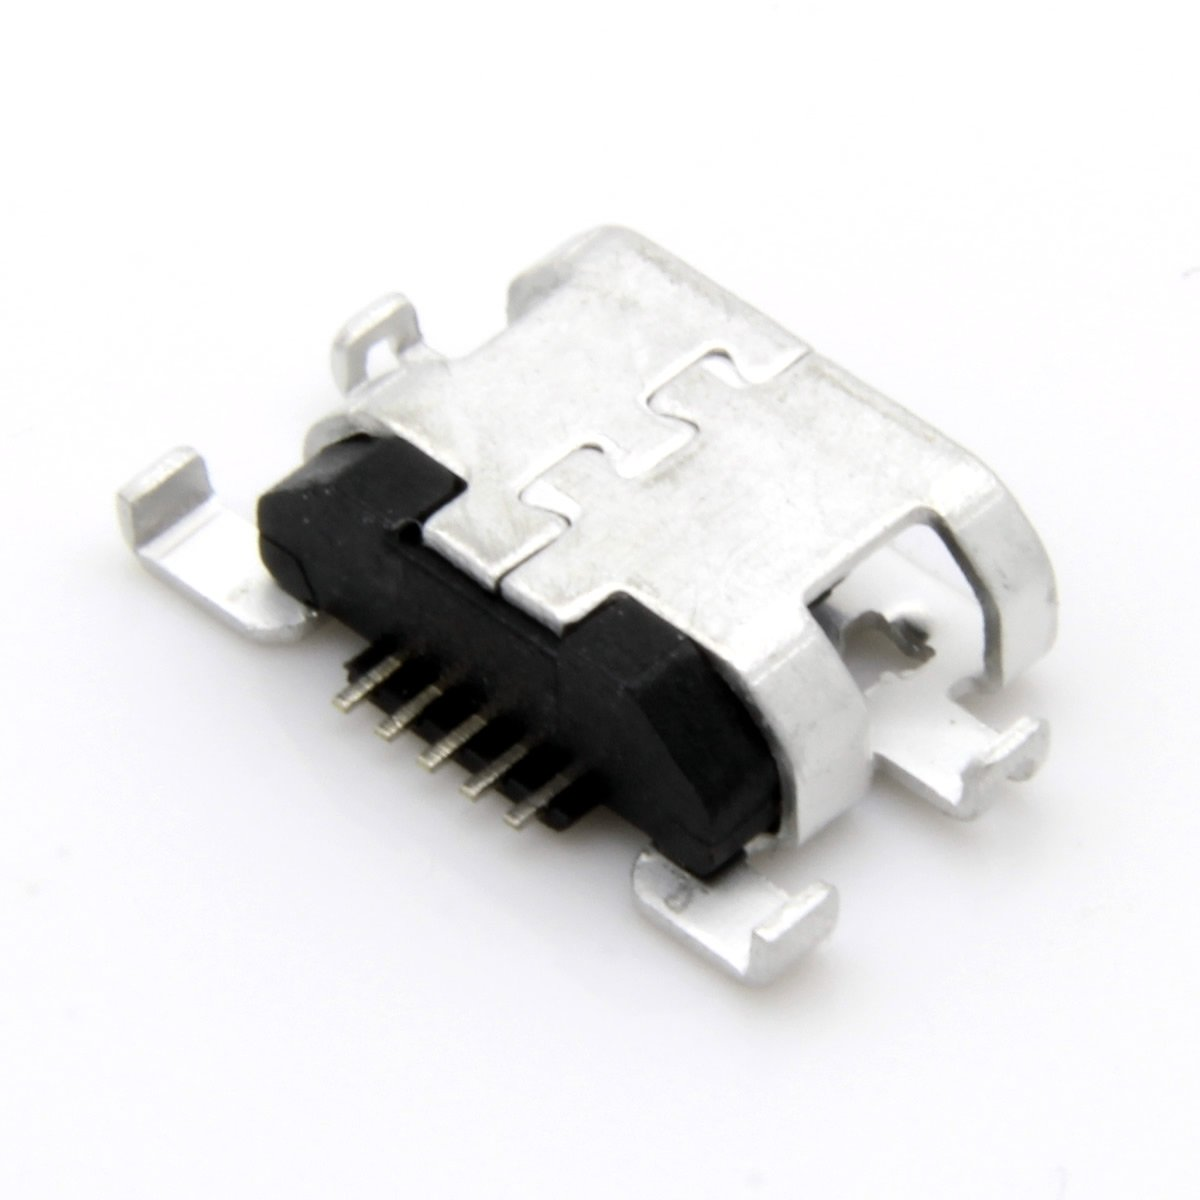 New Replacement Micro USB Charging Socket Port Connector for  Kindle Fire 8 7th Gen SX034QT One Click Components